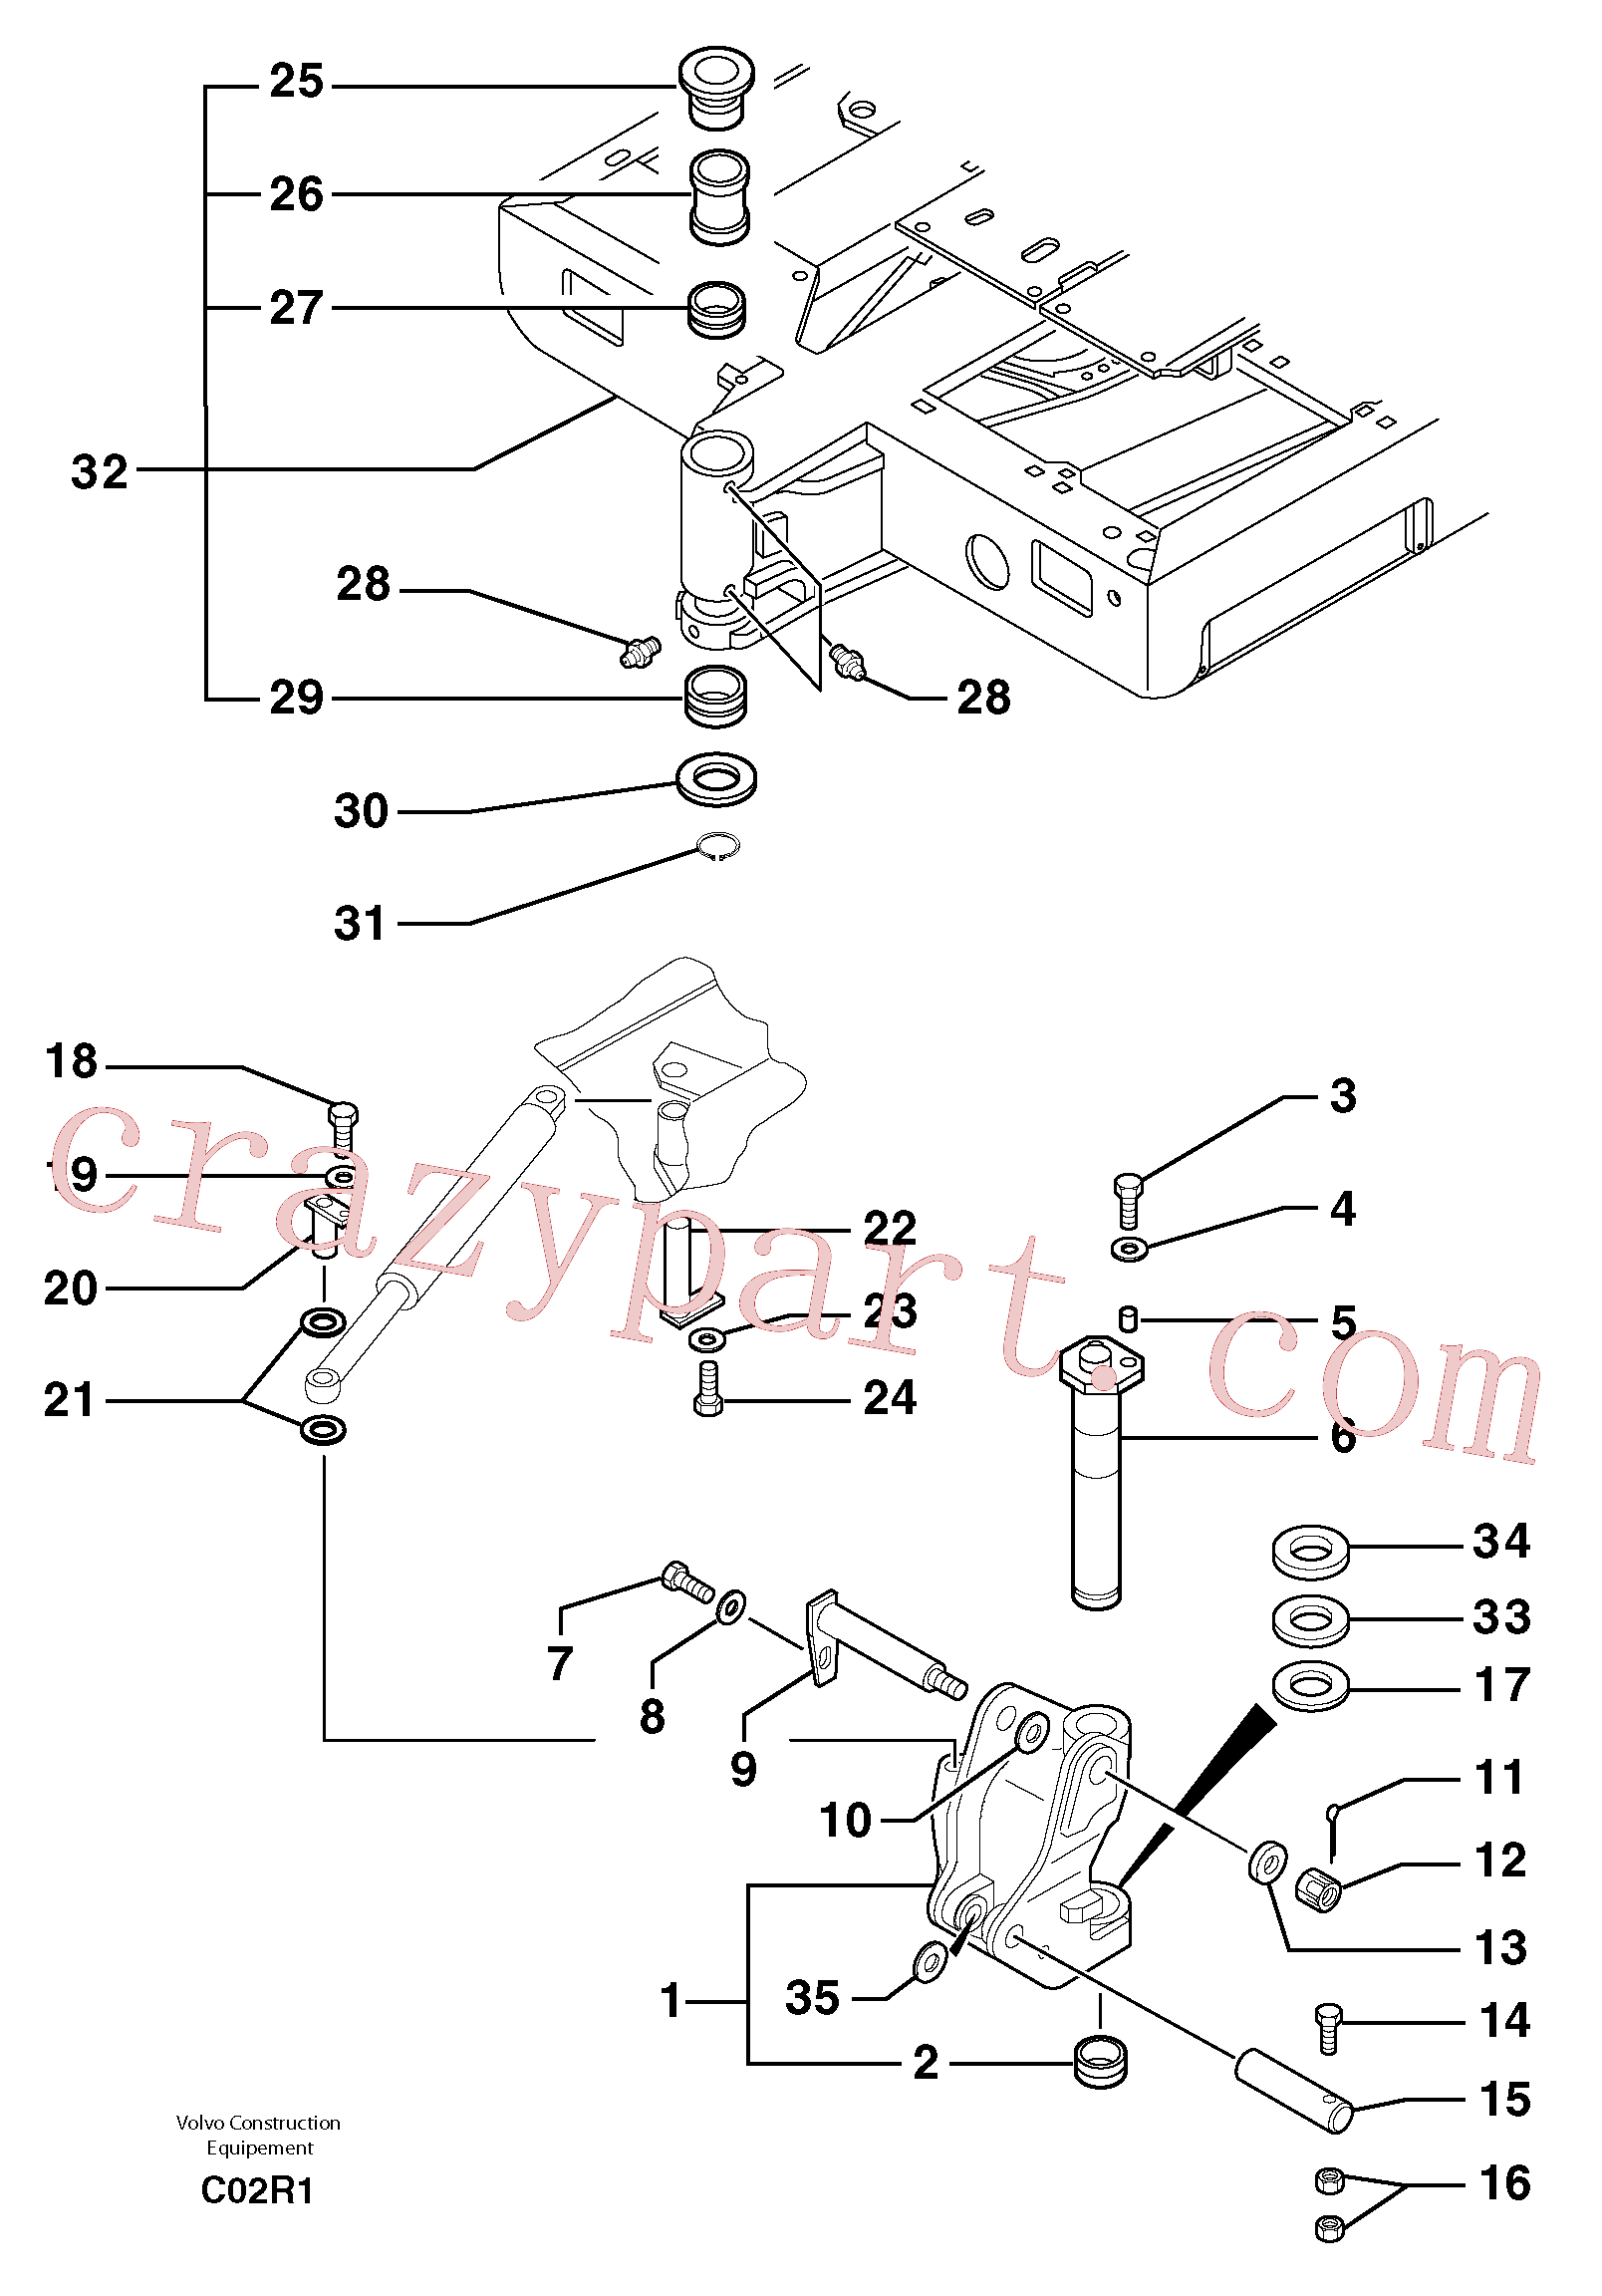 PJ4430003 for Volvo Platform / pivot pin(C02R1 assembly)